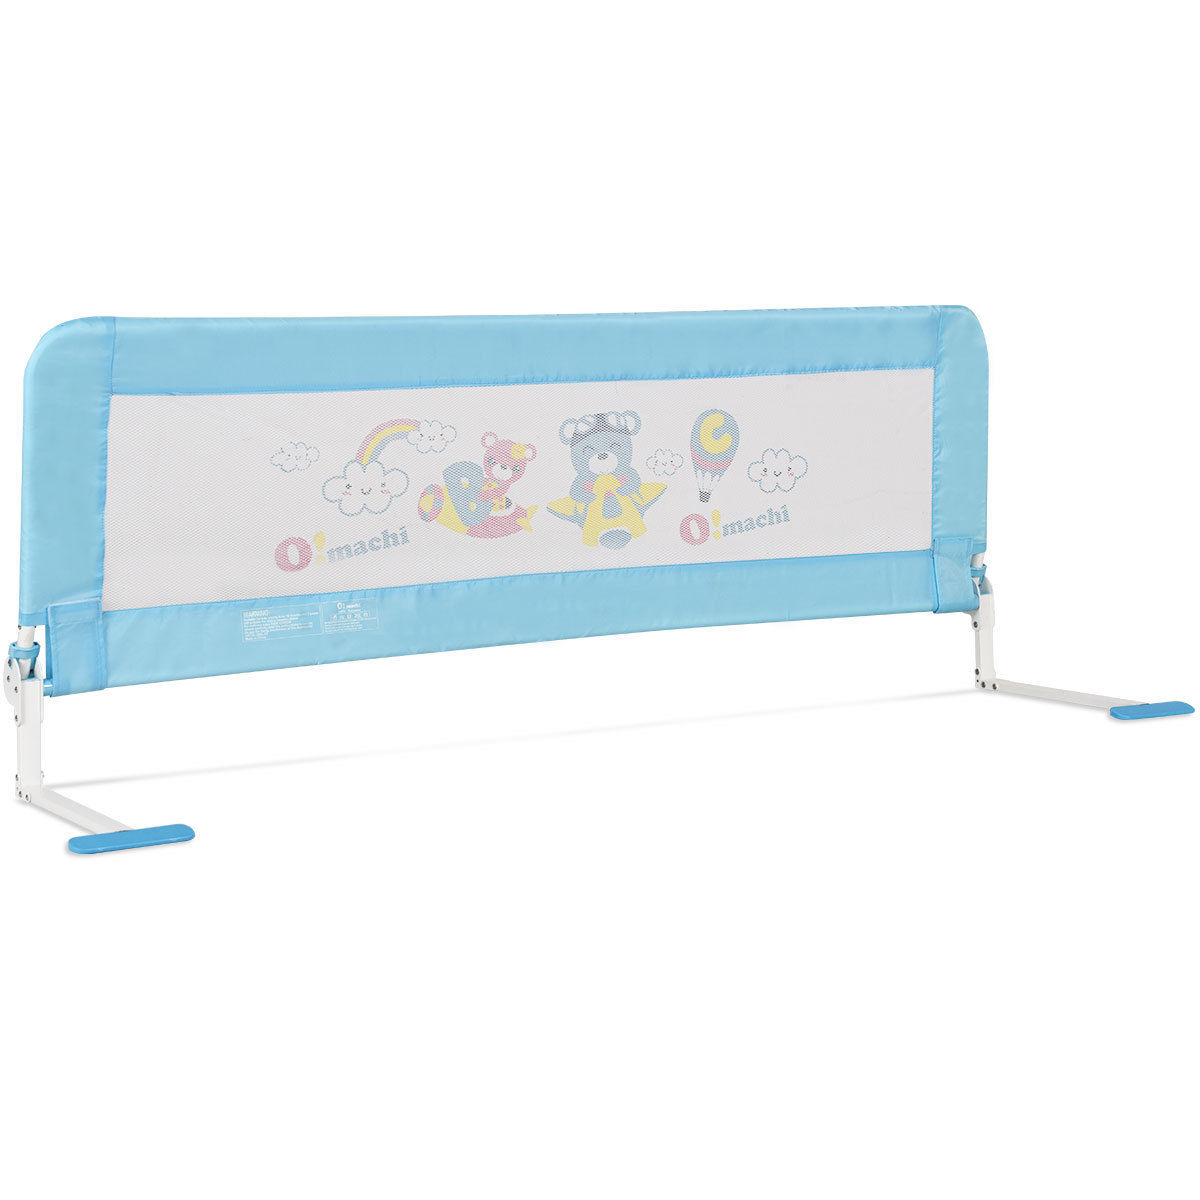 Gymax 59'' Breathable Baby Children Toddlers Bed Rail Guard Safety Swing Down Foamed by Gymax